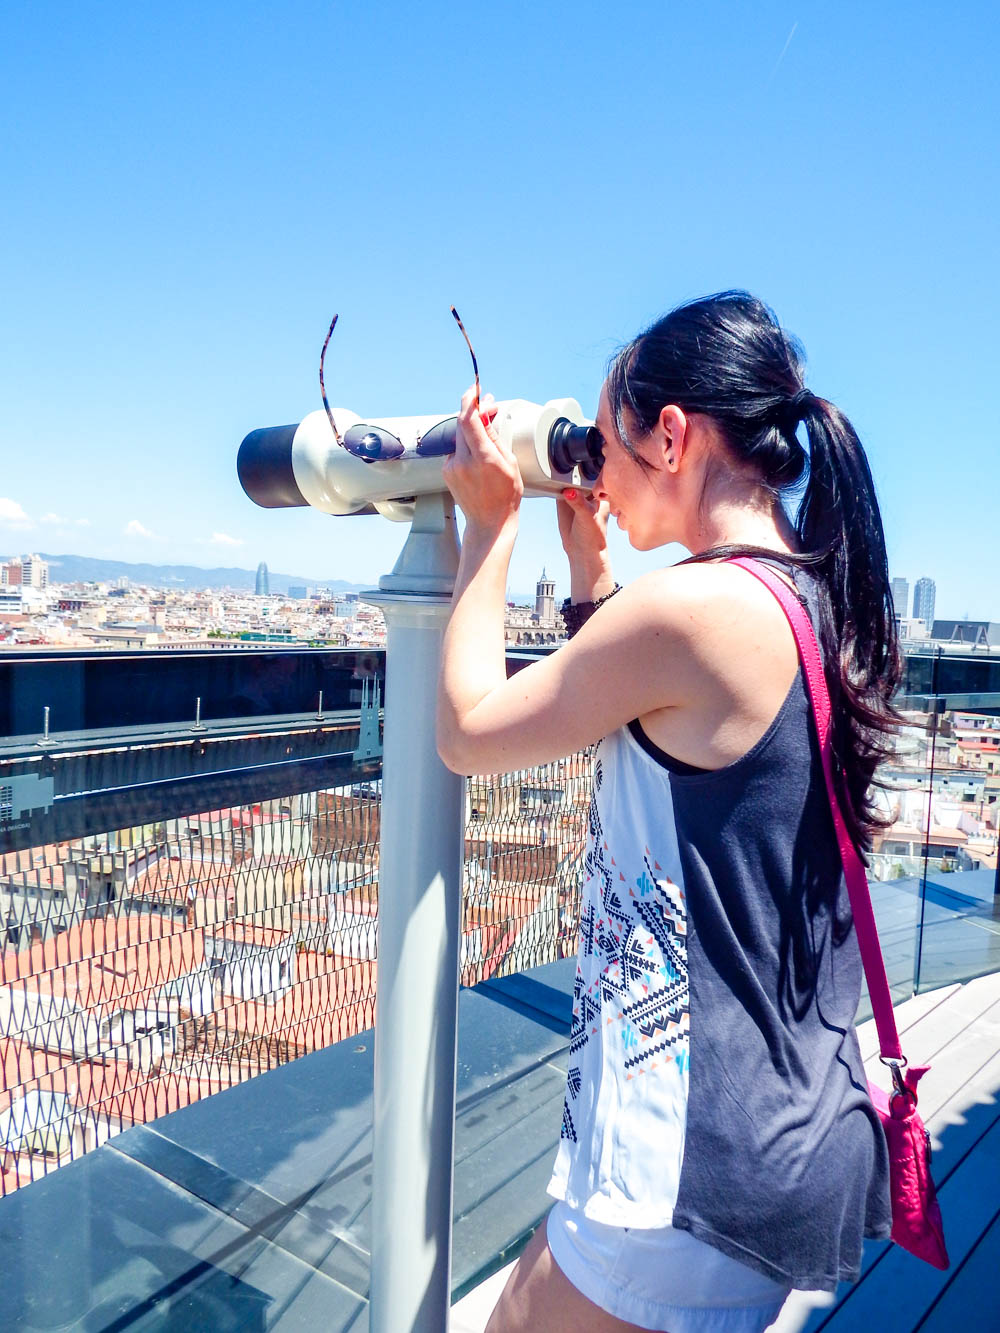 Staying vigilant in Barcelona | How to NOT guide for getting robbed abroad | What to do before, during, and after getting robbed abroad. Pickpocketing in Europe, travel insurance, etc. #traveltips #europe